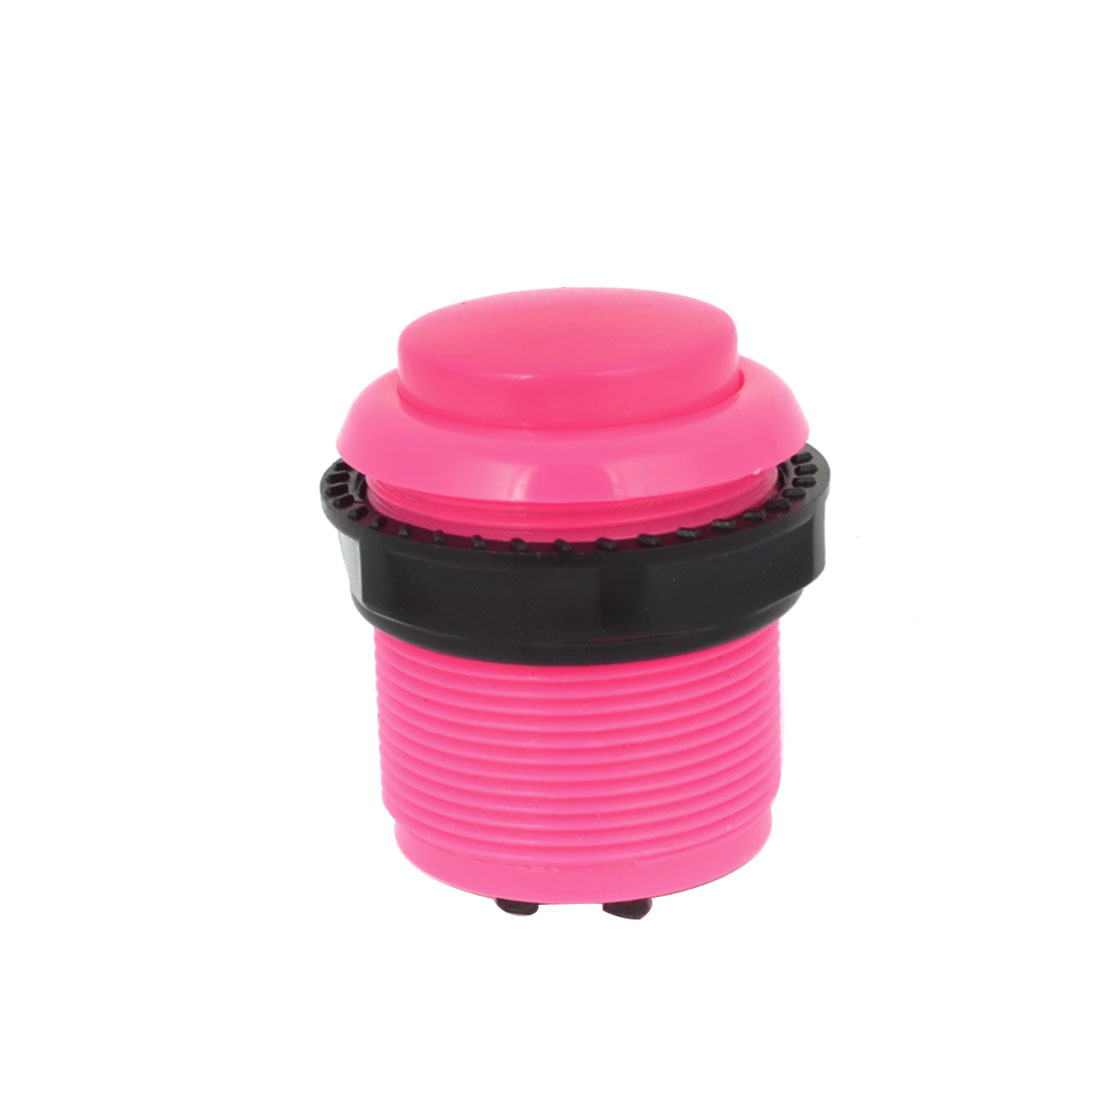 Arcade Games 2 Terminals Momentary Push Button 20mm Pink AC 250V 1.5A